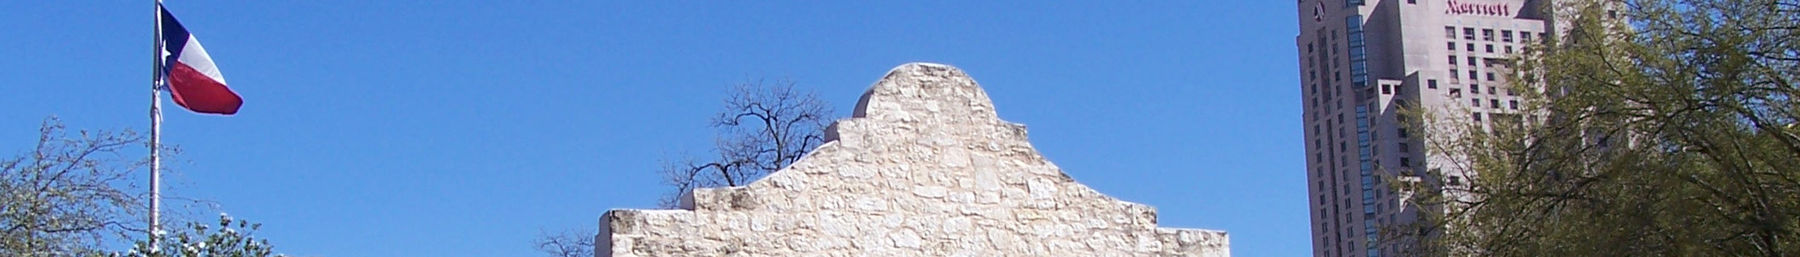 Texas banner Gable of The Alamo.jpg